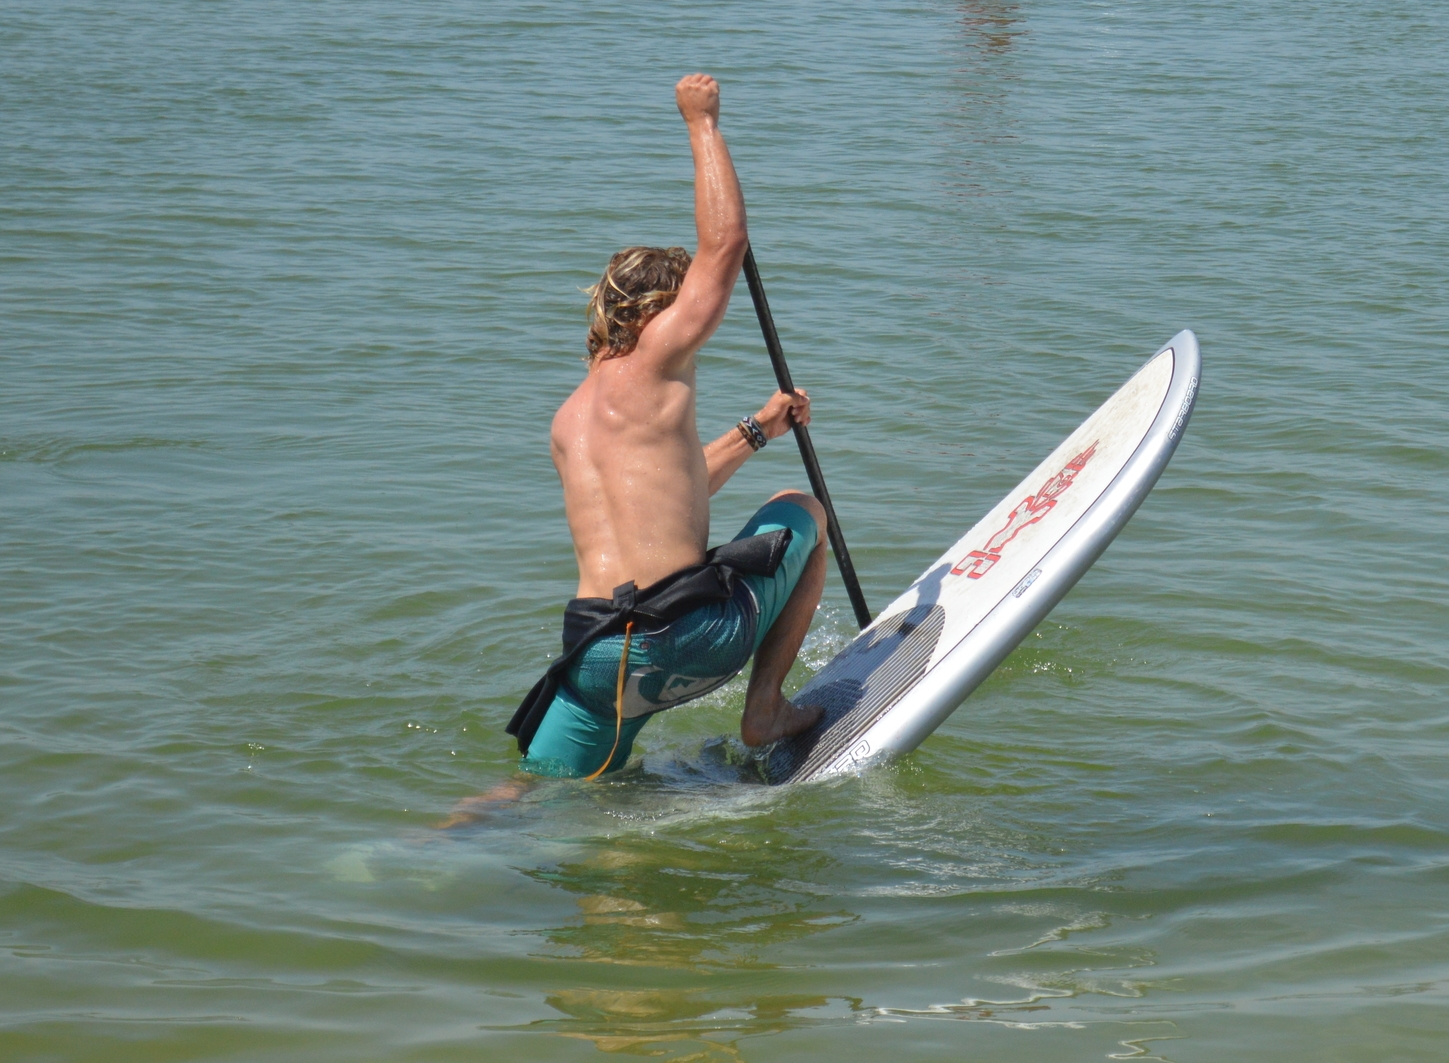 Sup Freestyle in the Ria Formosa